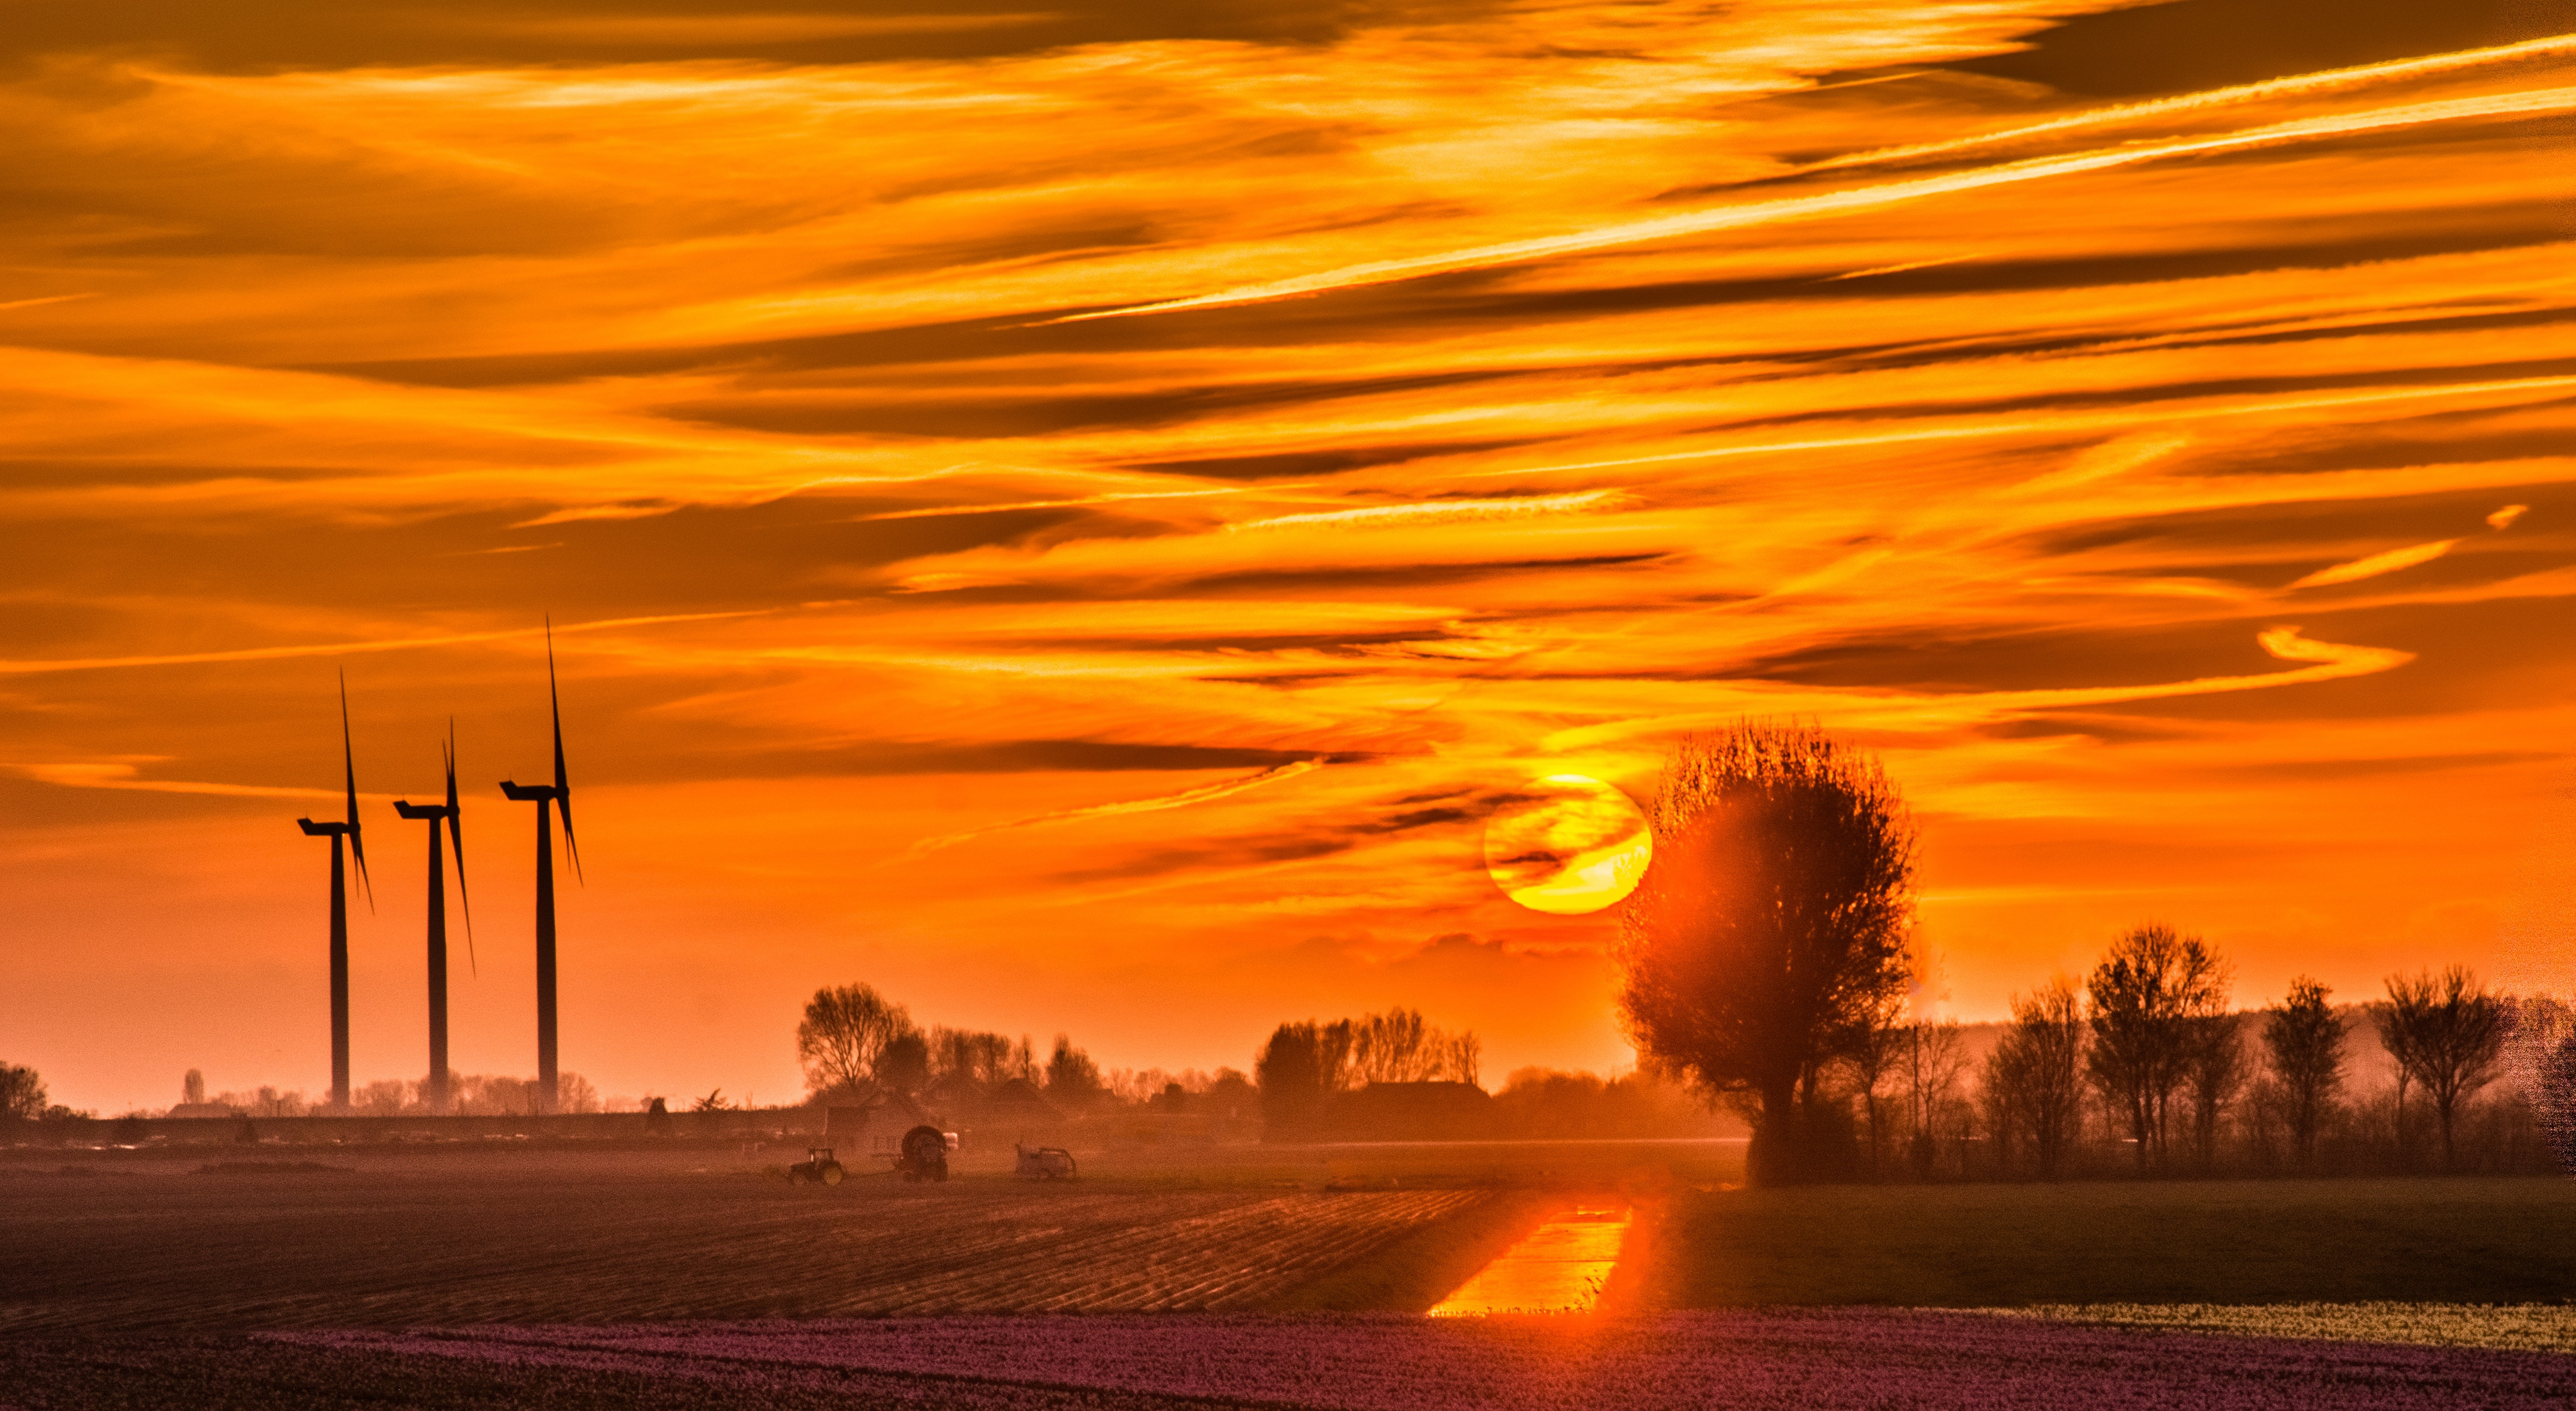 Sunrise Wallpapers, Pictures, Images